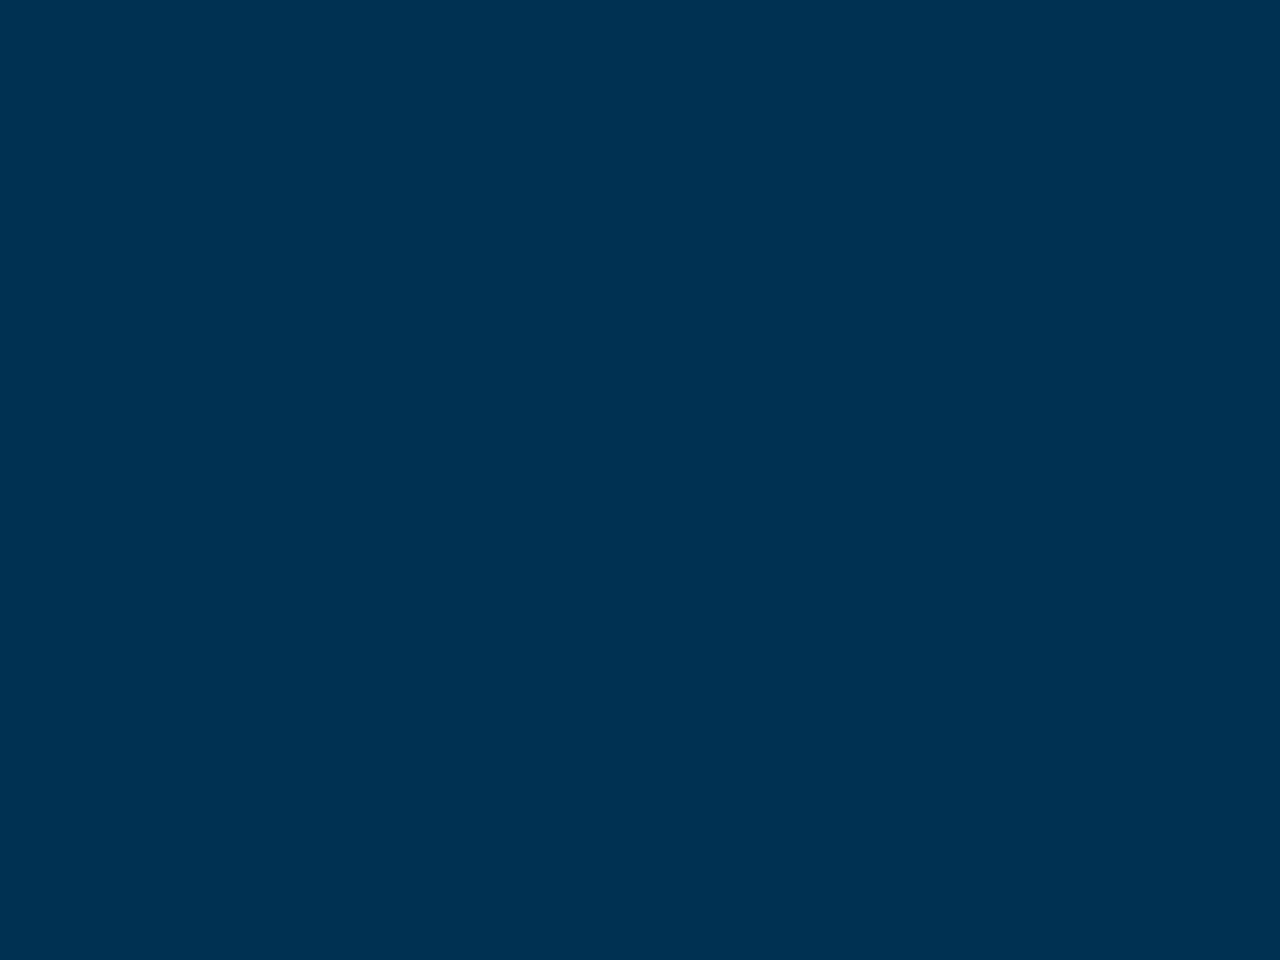 1280x960 Prussian Blue Solid Color Background